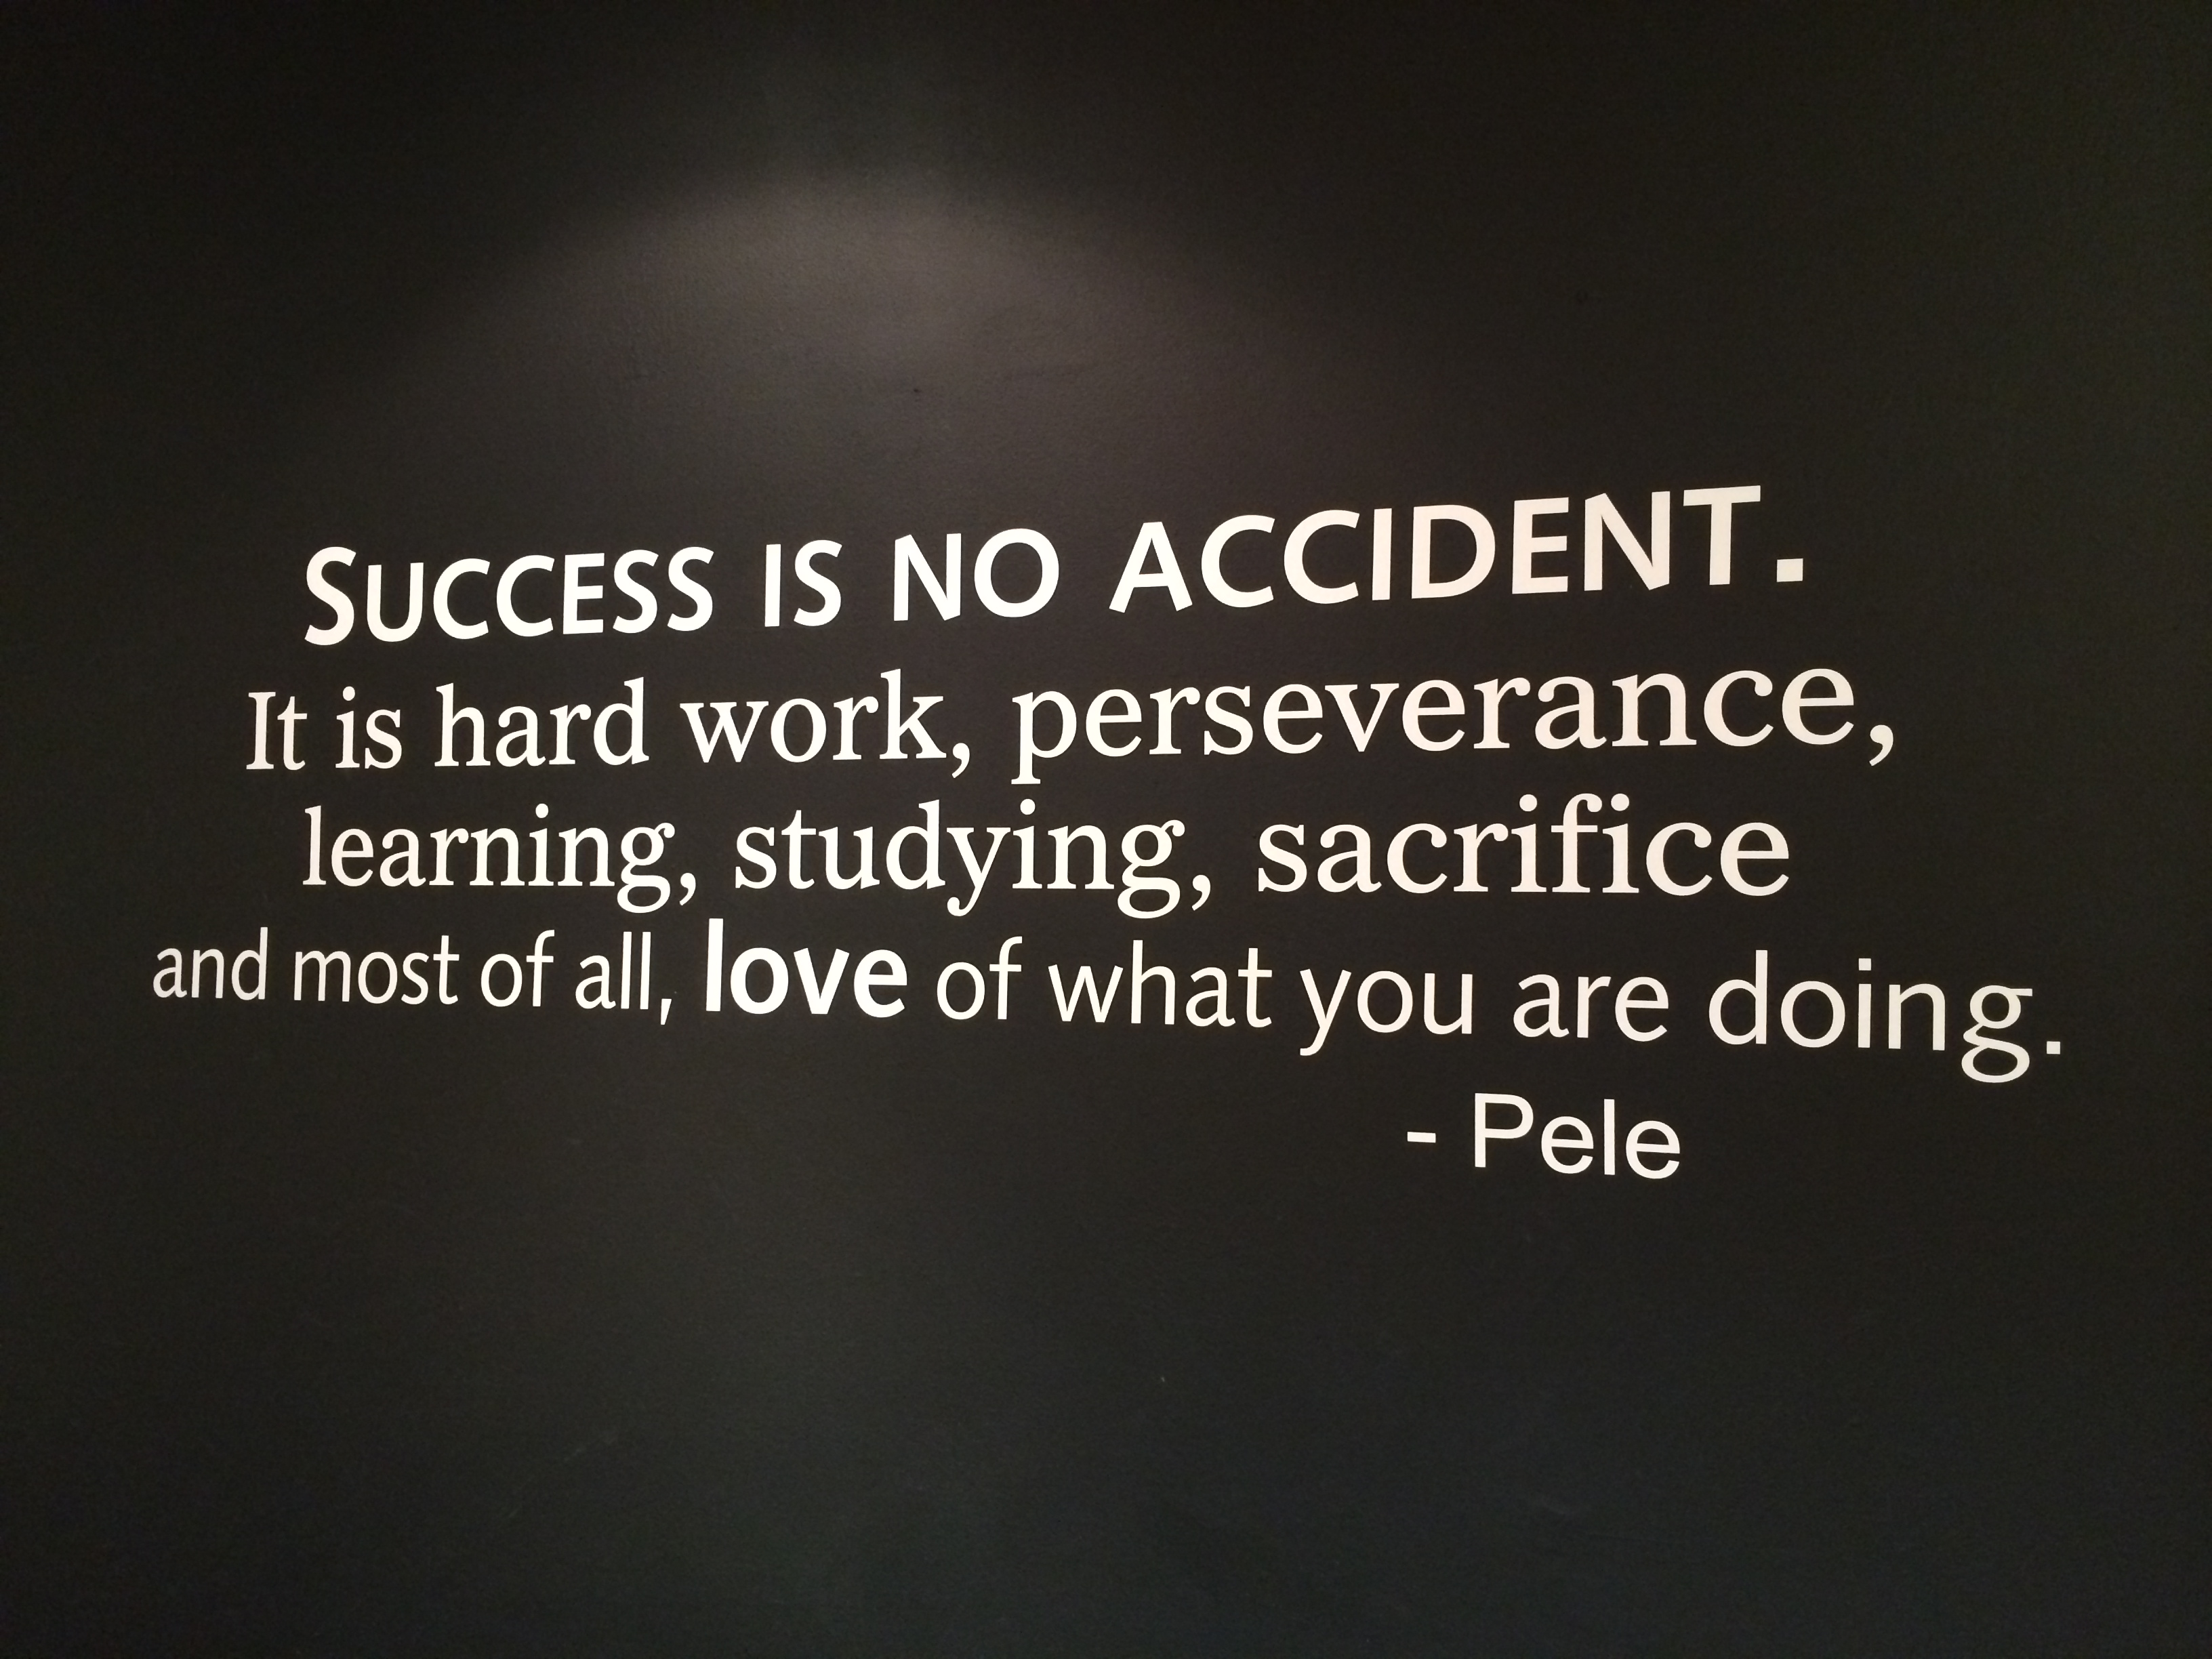 Success is no accident. It is hard work, perseverance, learning, studying, sacrifice and most of all, love of what you are doing. - Pele